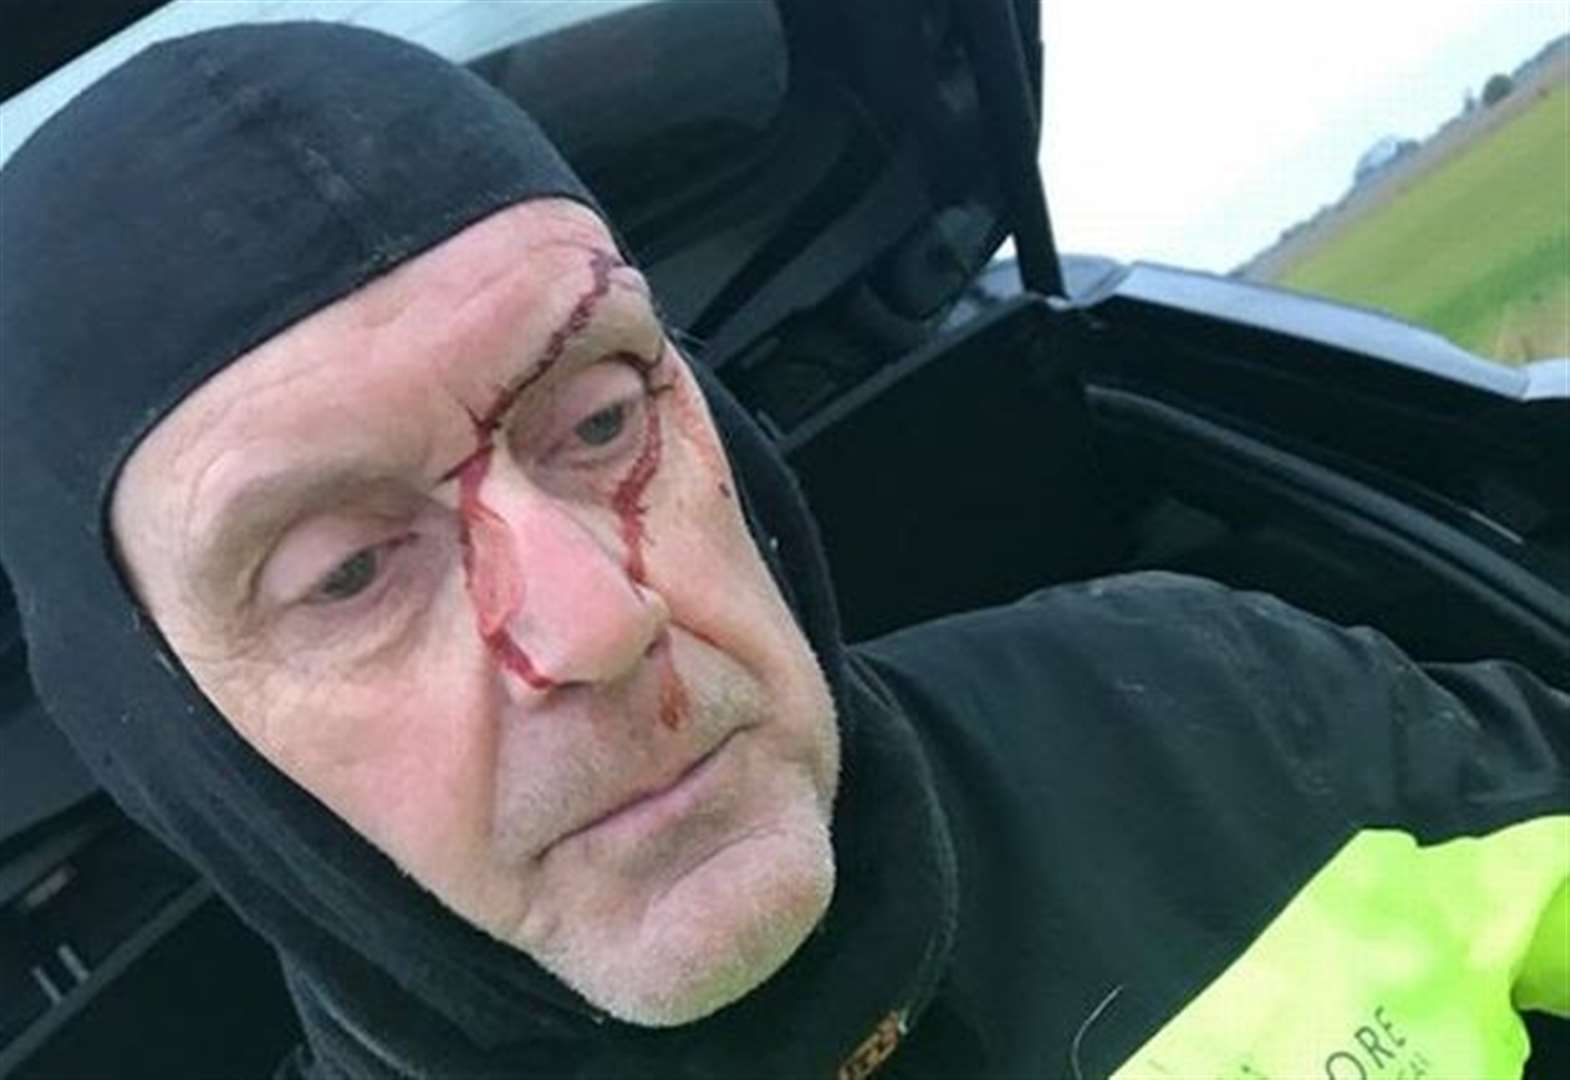 Gorefield grandfather suffers gash to head in unprovoked attack as he was cycling now family are appealing for help to catch his attackers